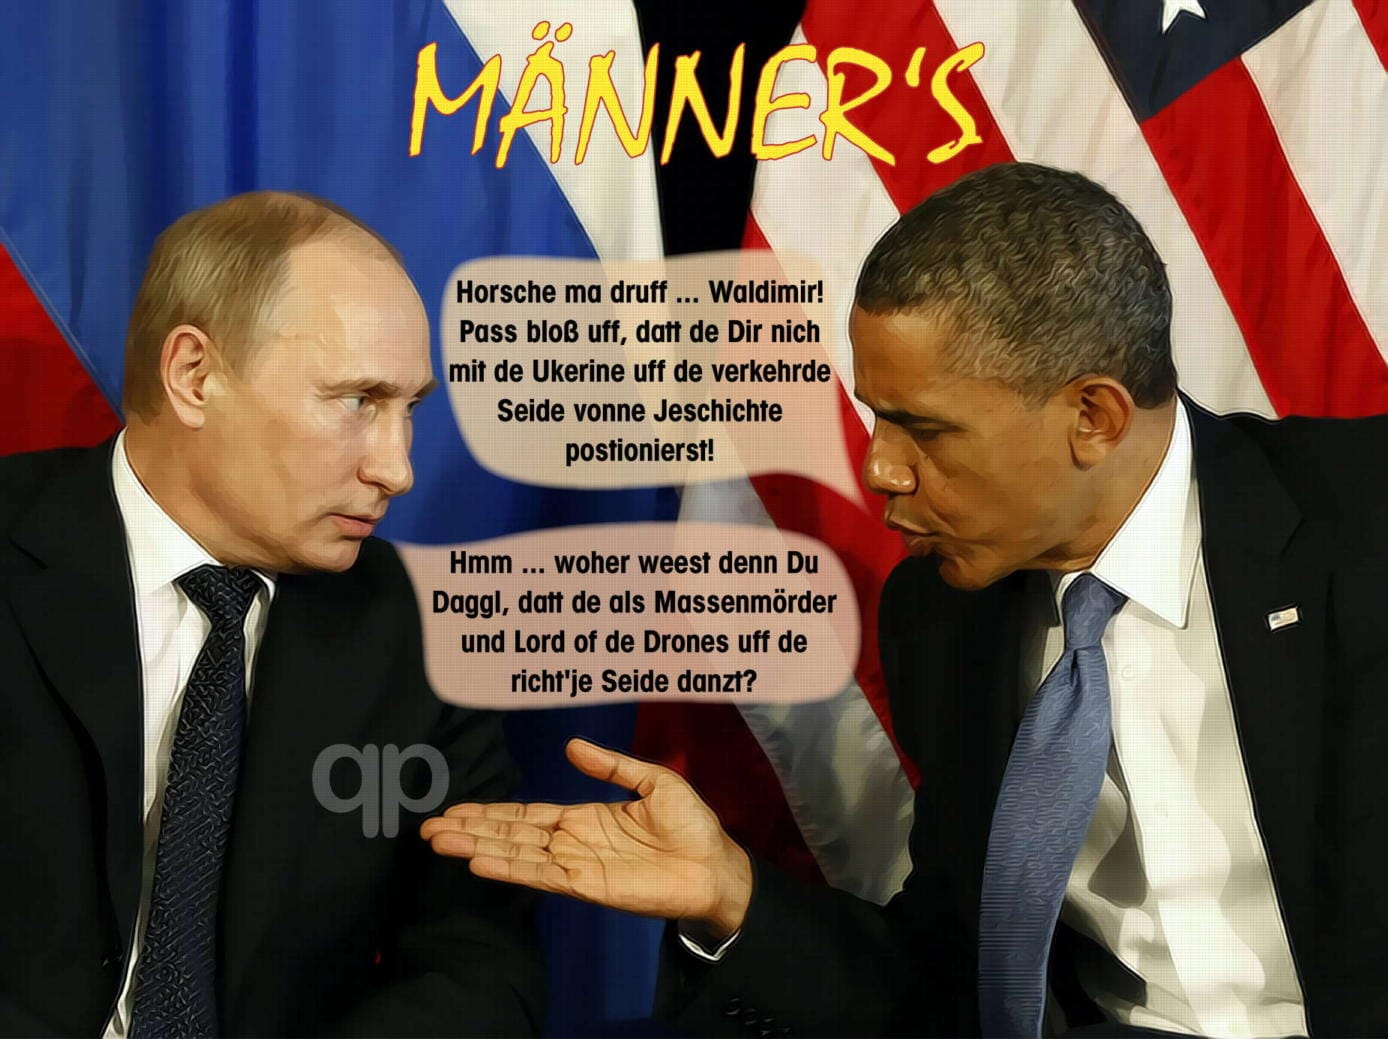 Merkels neustes Hartz IV Opfer in Russland ausfindig gemacht Putin-obama-mens-talk-about-ukraine-and-history-Kopie